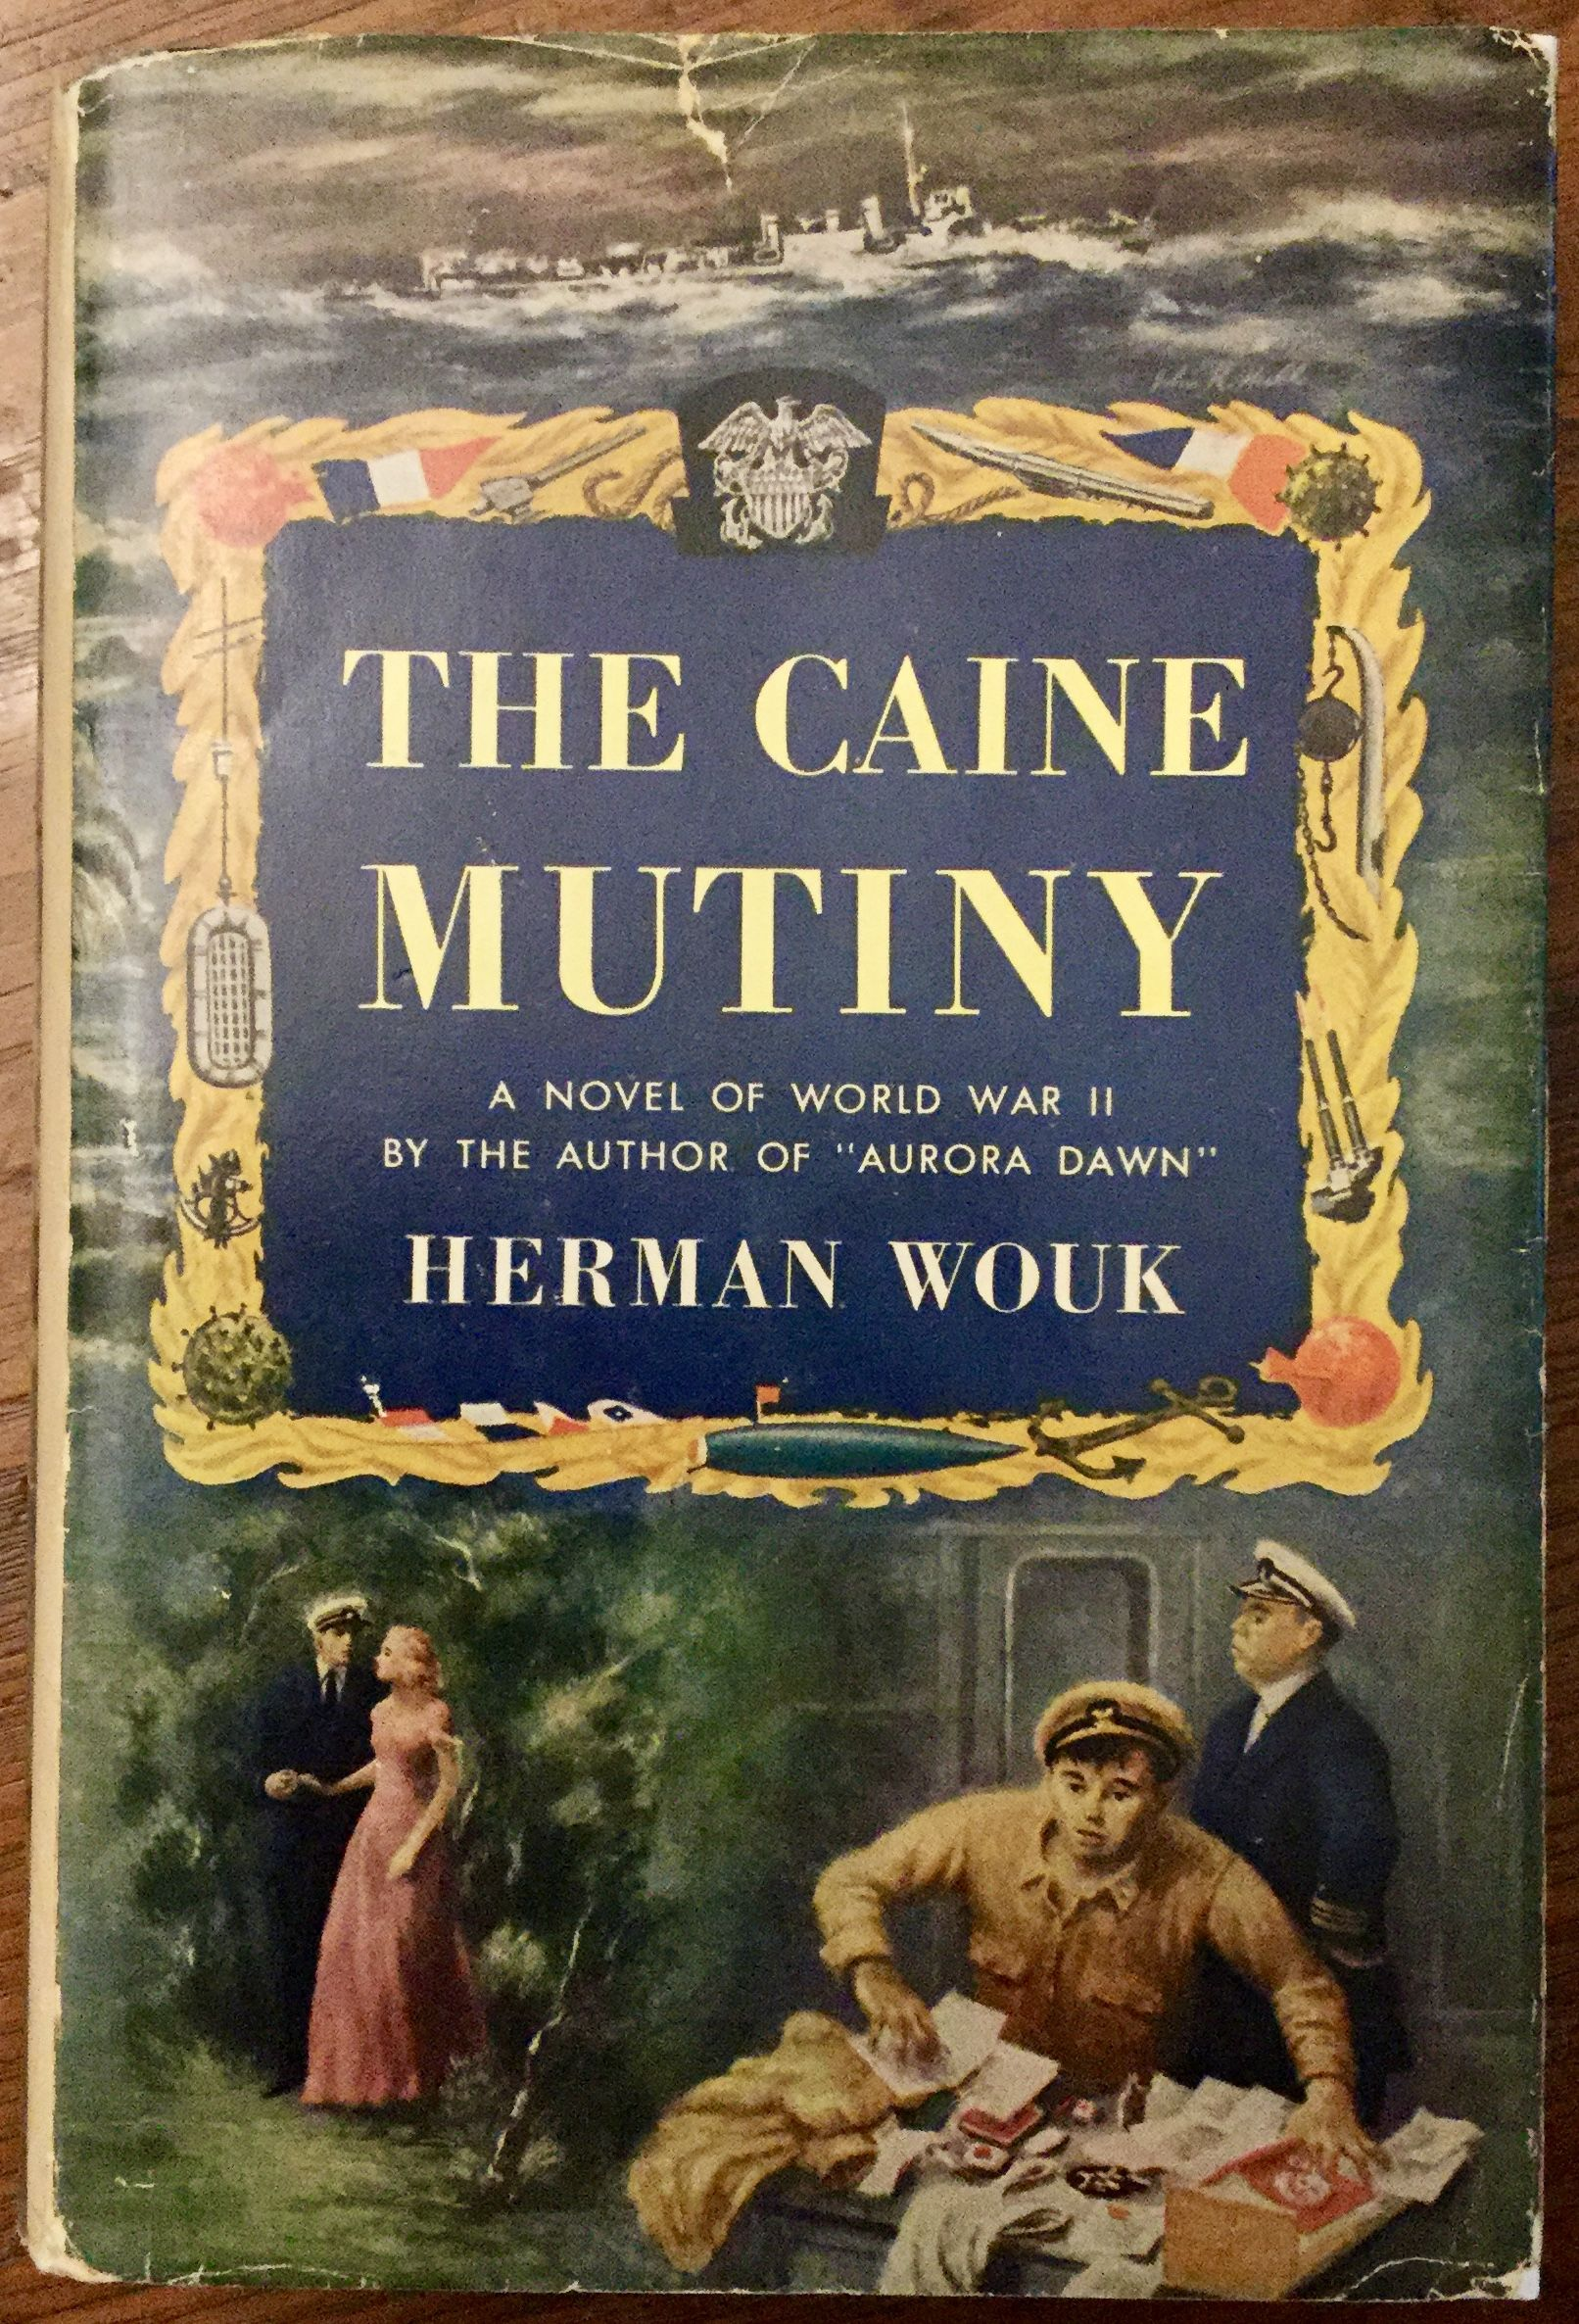 The Caine Mutiny book cover